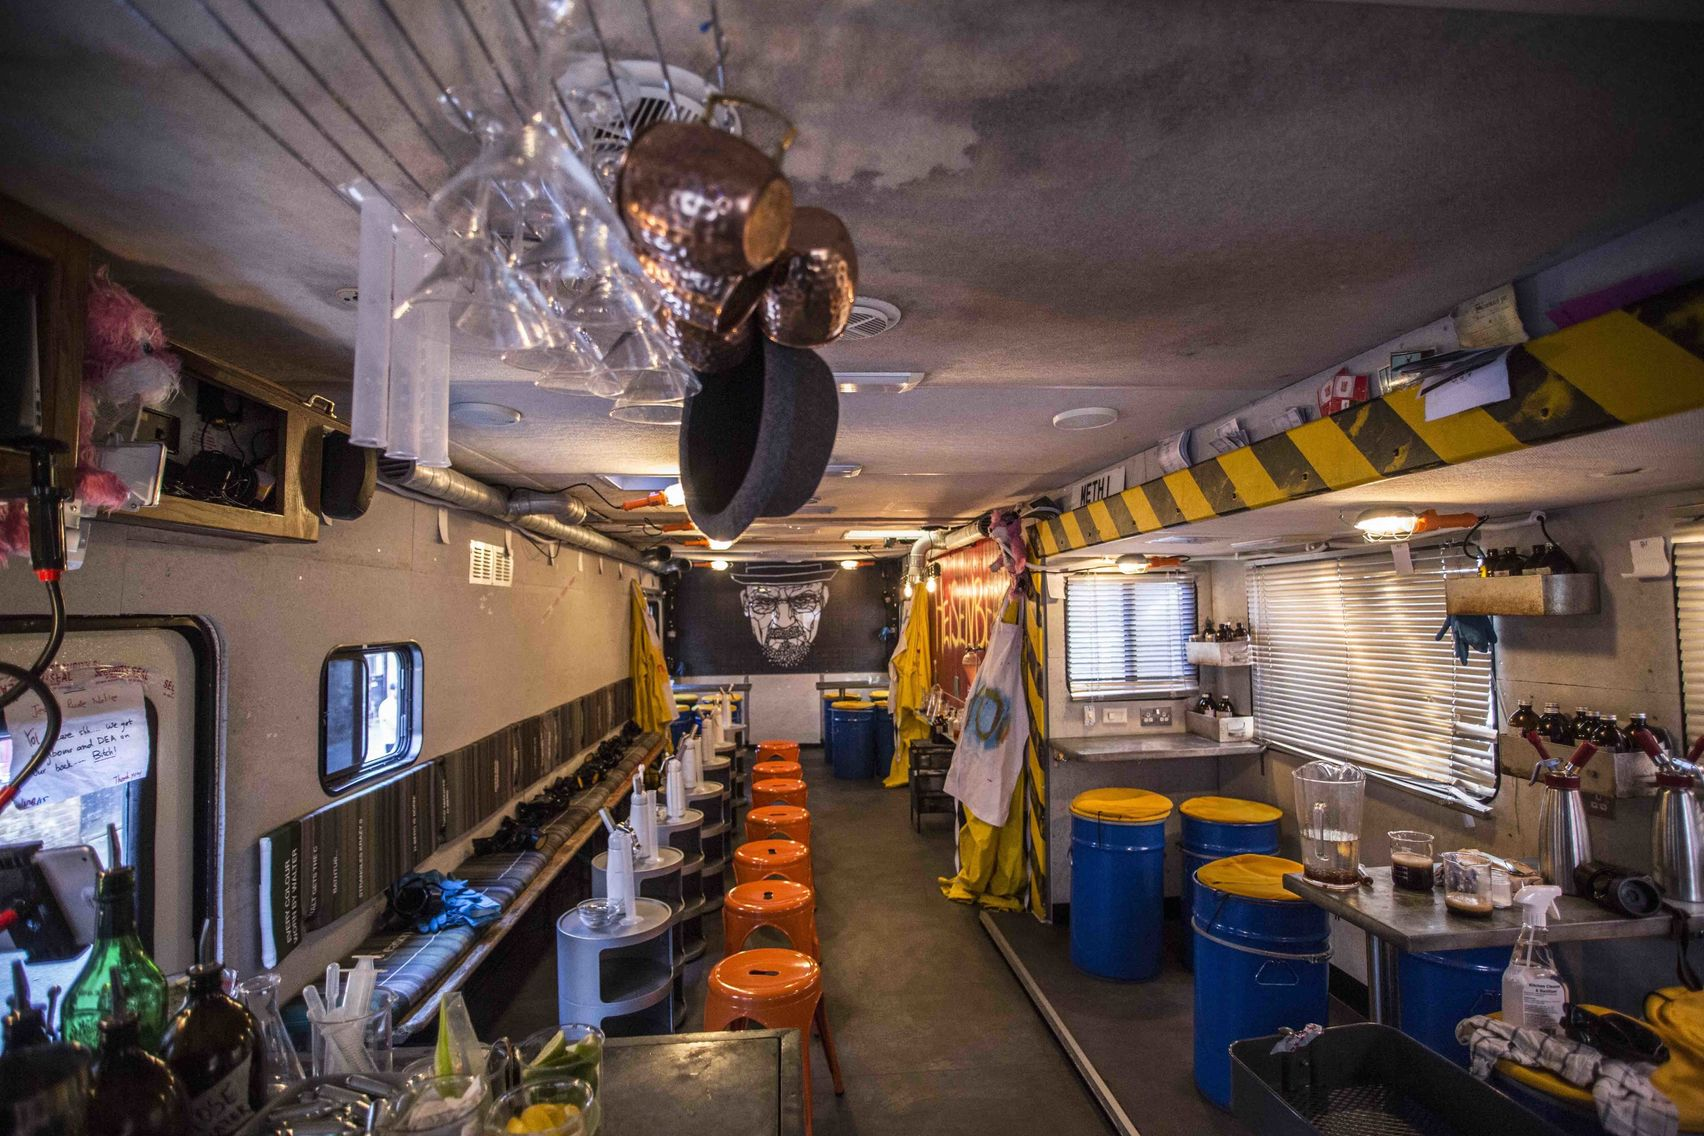 Inside an RV which is inspired by Breaking Bad